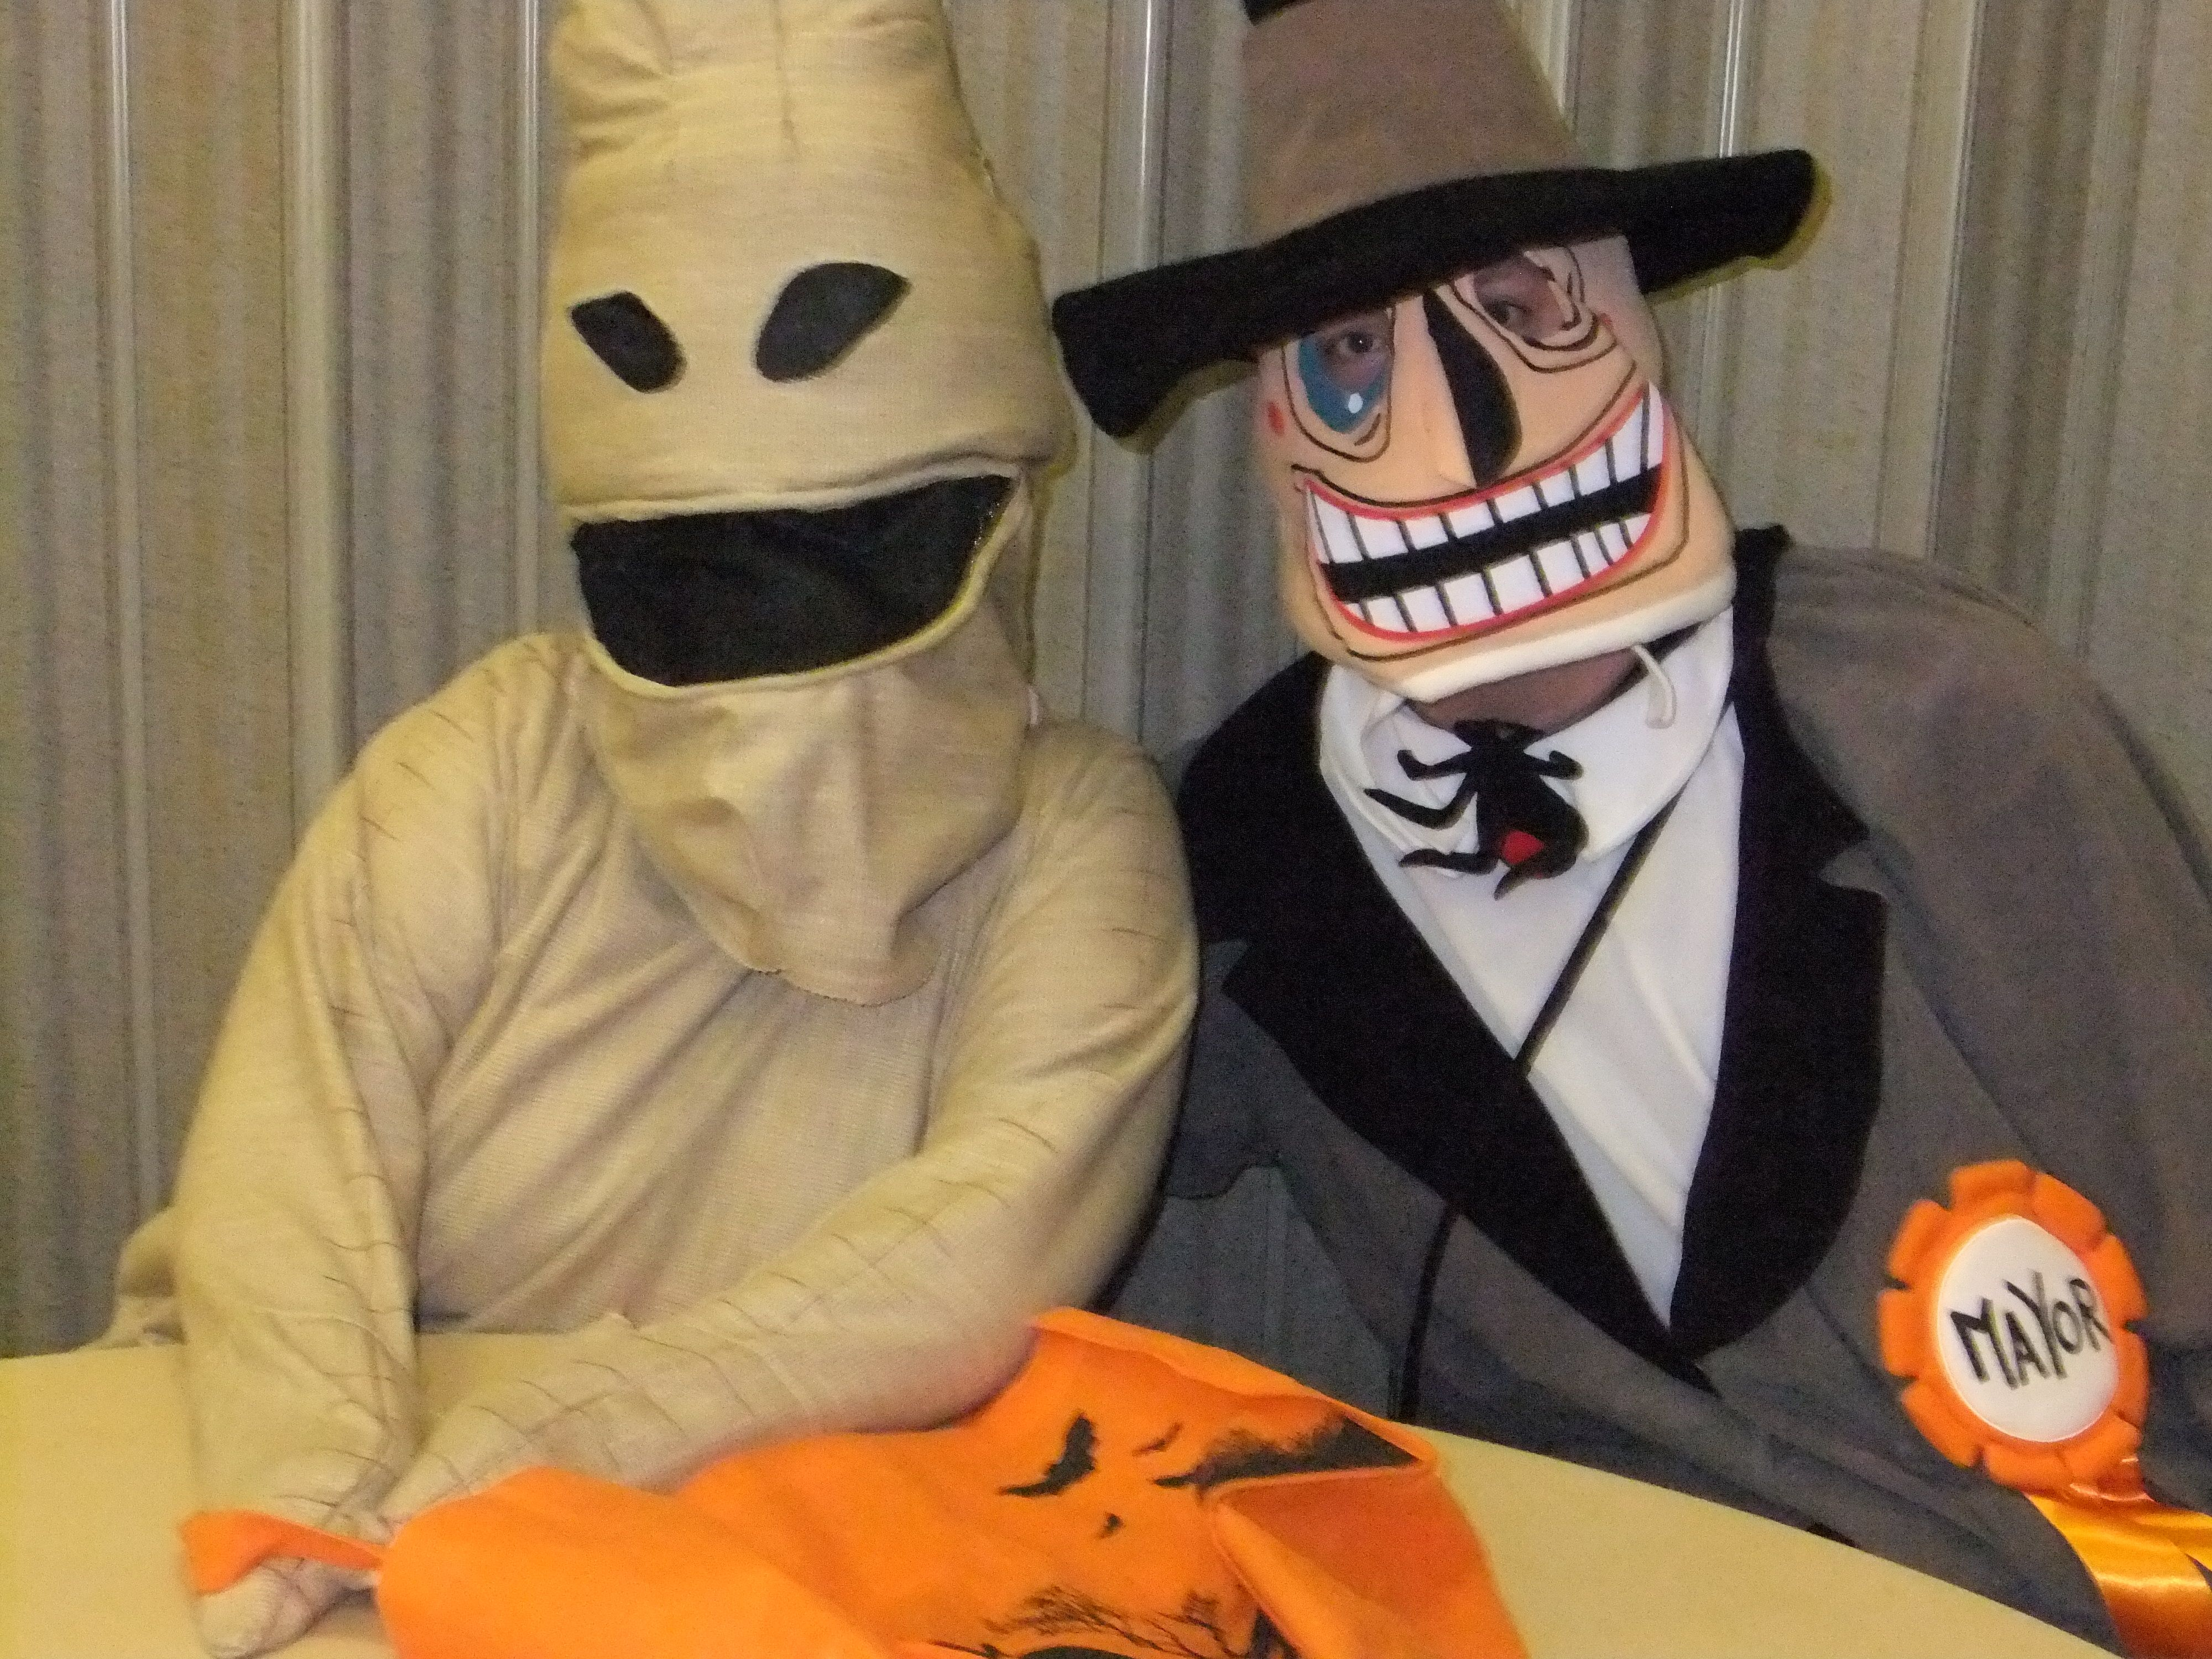 Oogie Boogie and The Mayor by ThimbeLinda and TallDave